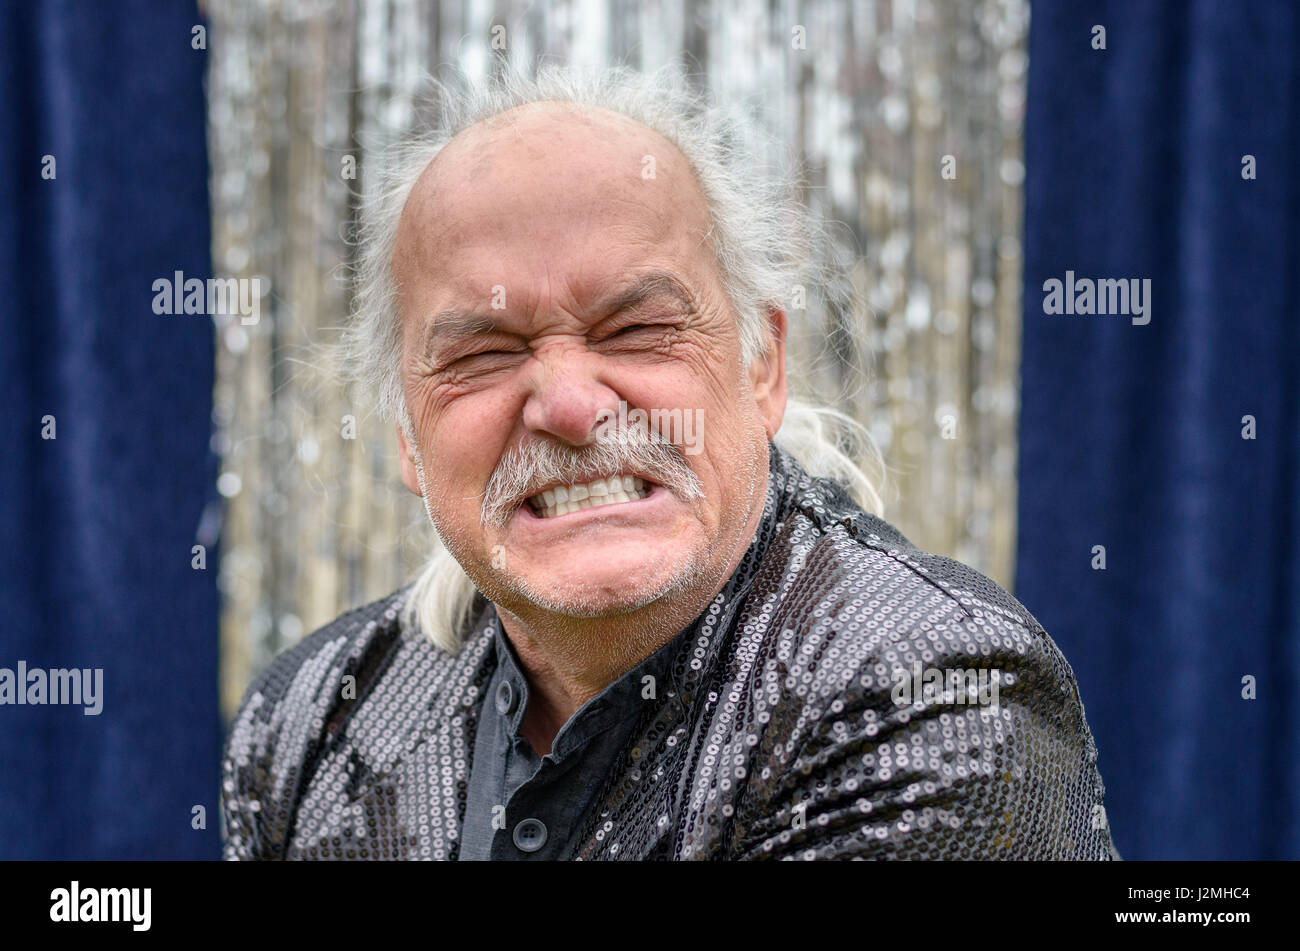 Angry balding man gnashing his teeth and grimacing in frustration in a head and shoulders portrait in front of silver - Stock Image